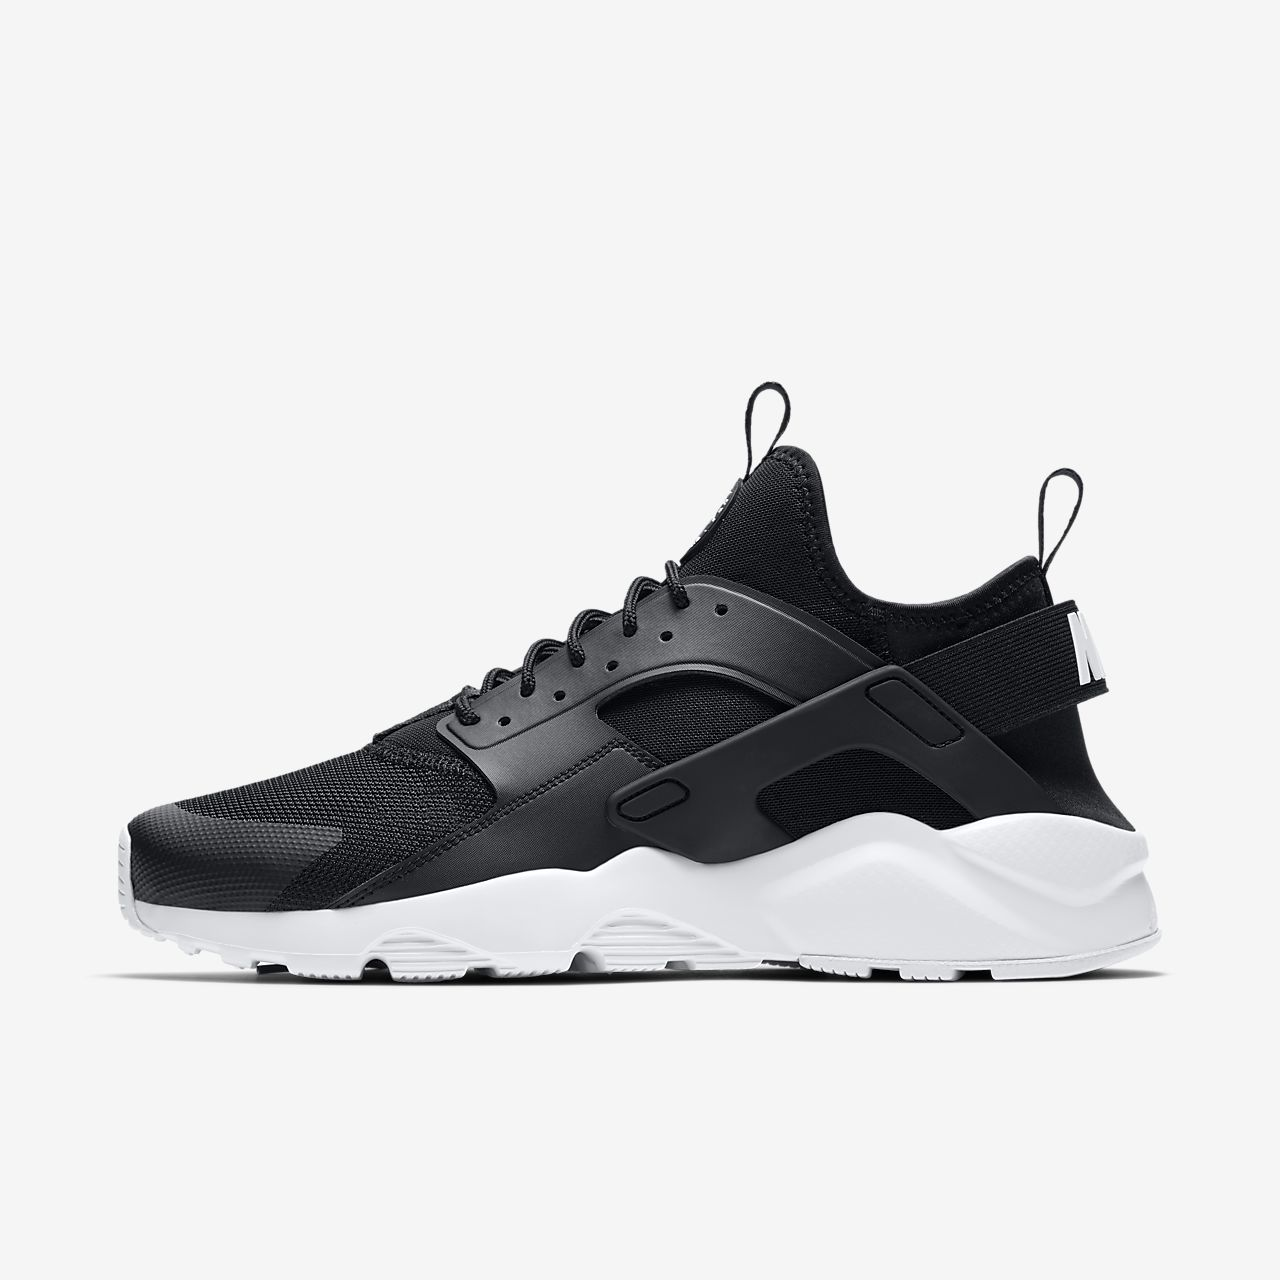 best website 18f6e 0598e Low Resolution Nike Air Huarache Ultra Herrenschuh Nike Air Huarache Ultra  Herrenschuh